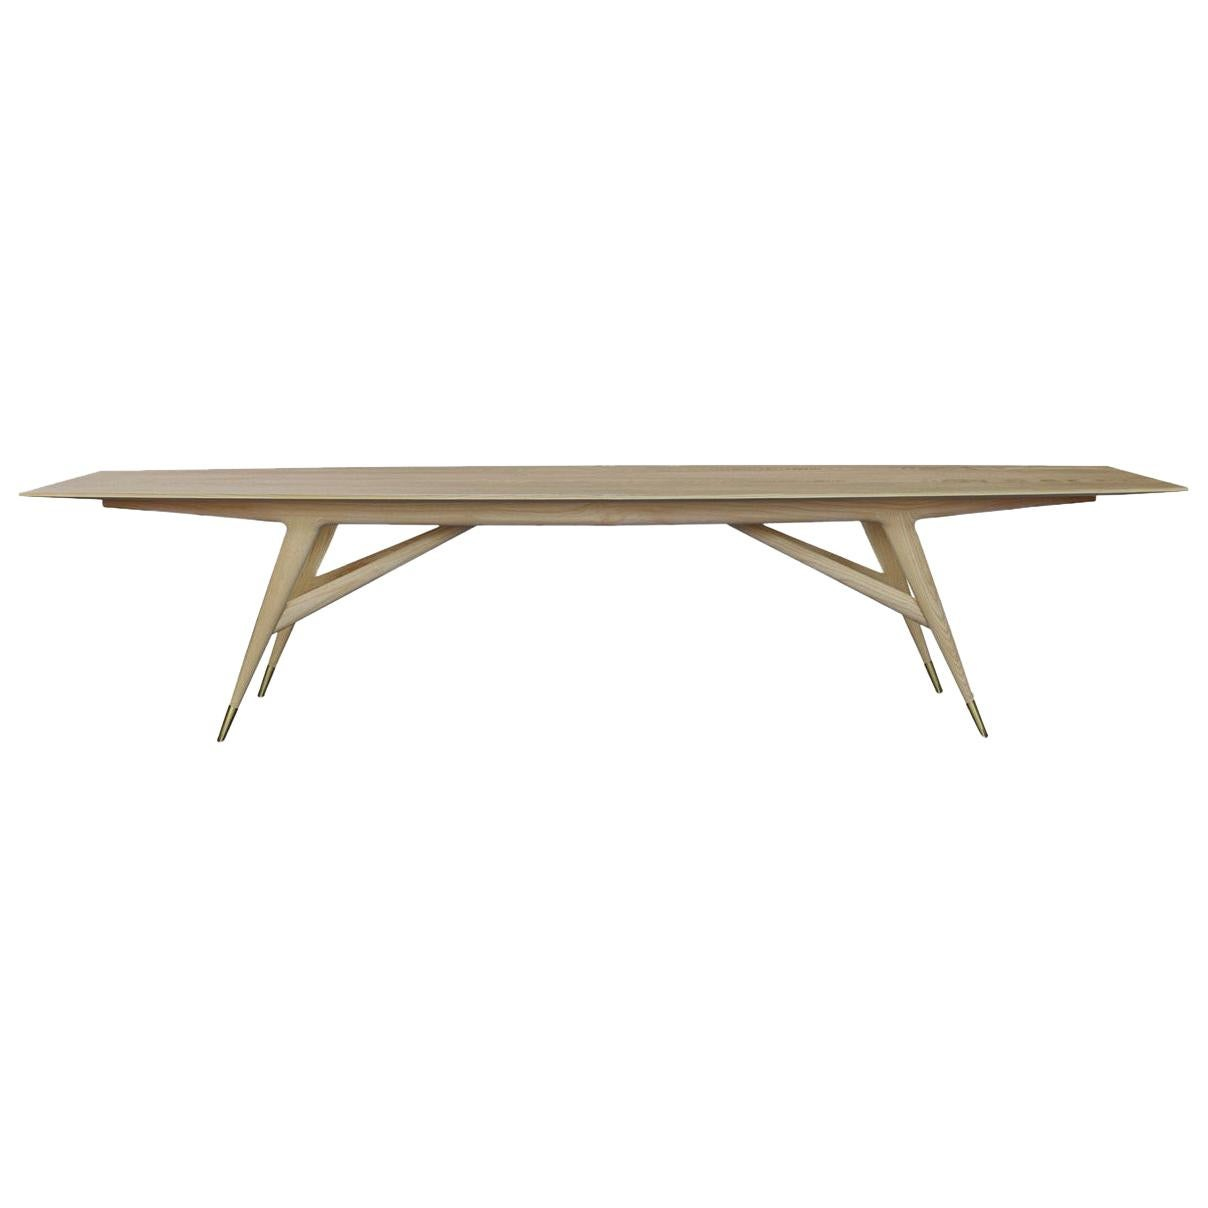 Molteni&C D.859.1B Dining/Conference Table in Natural Ash Wood by Gio Ponti